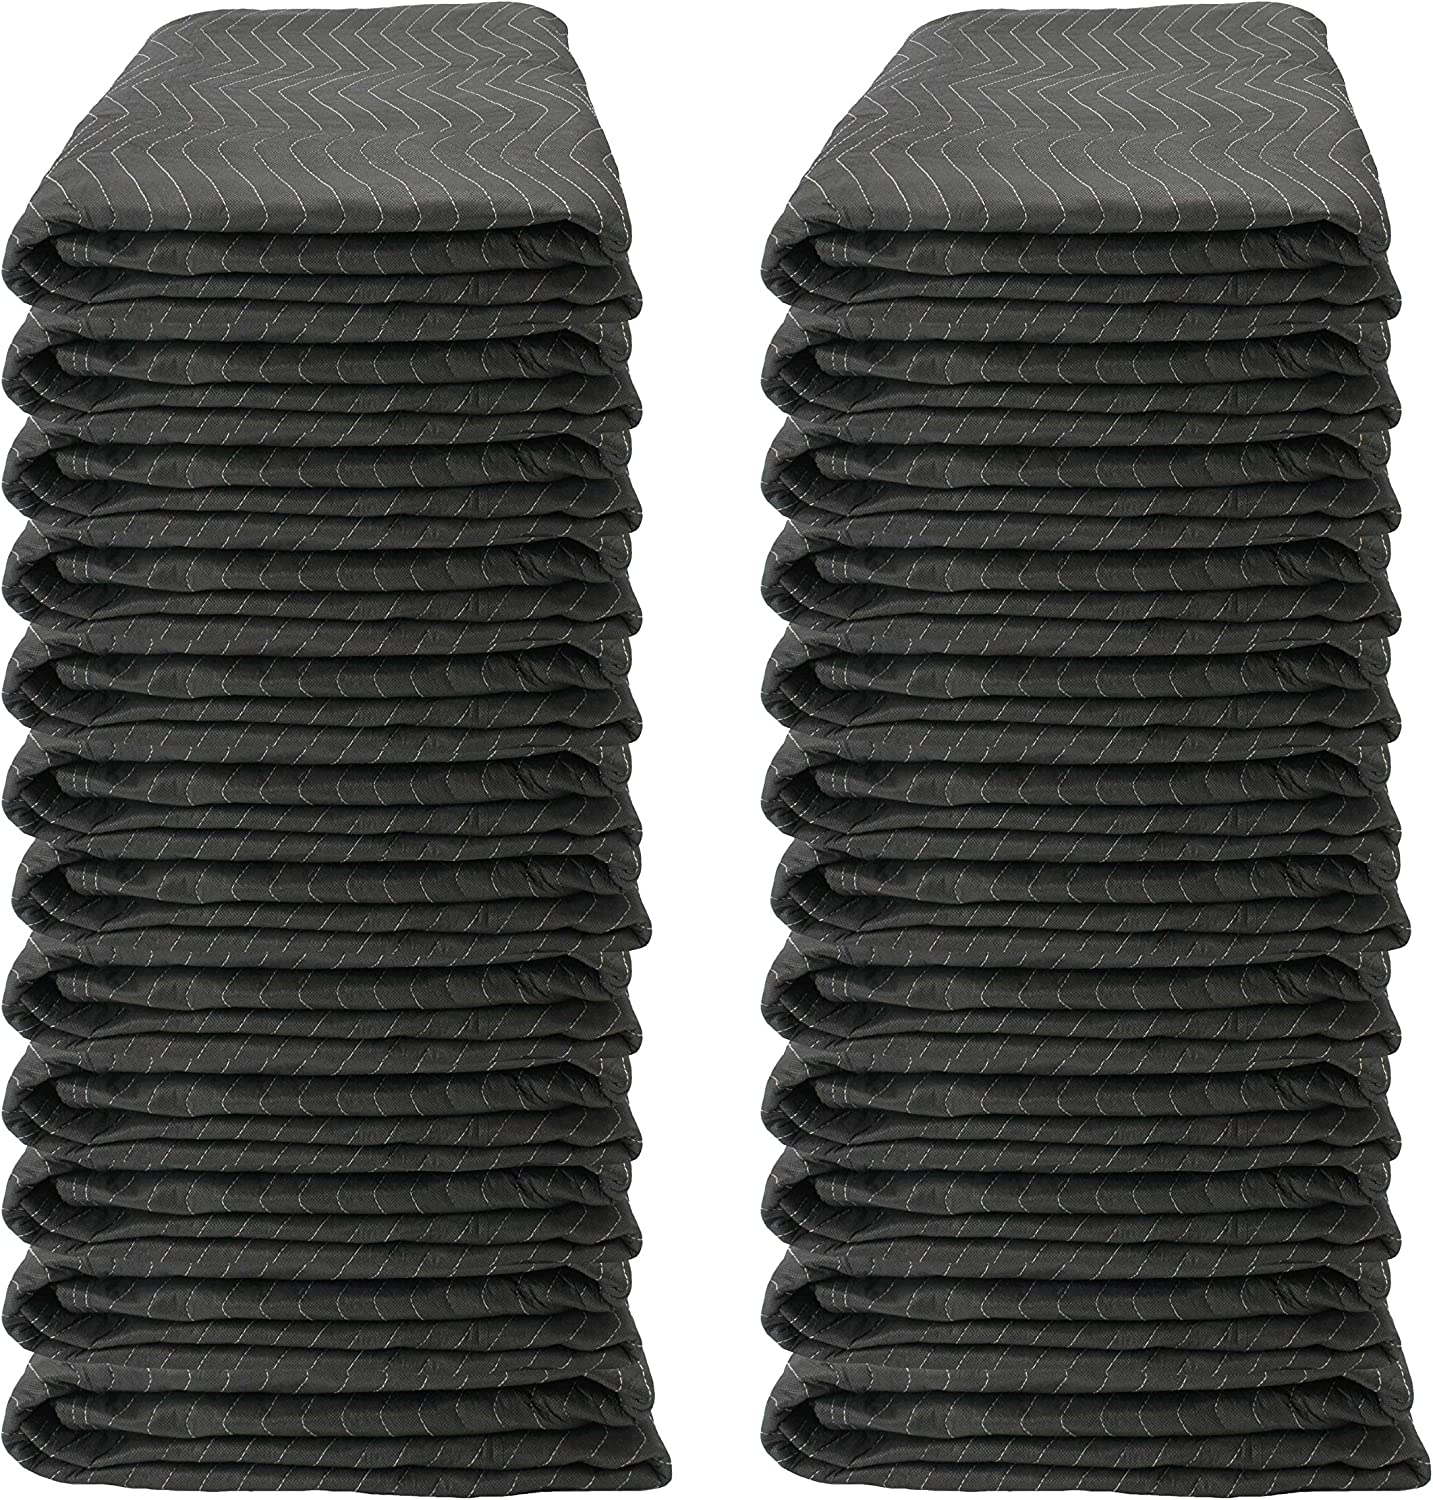 US Cargo Max 63% OFF Control Econo Mover Moving Inches - Long Free shipping New 80 Blankets By